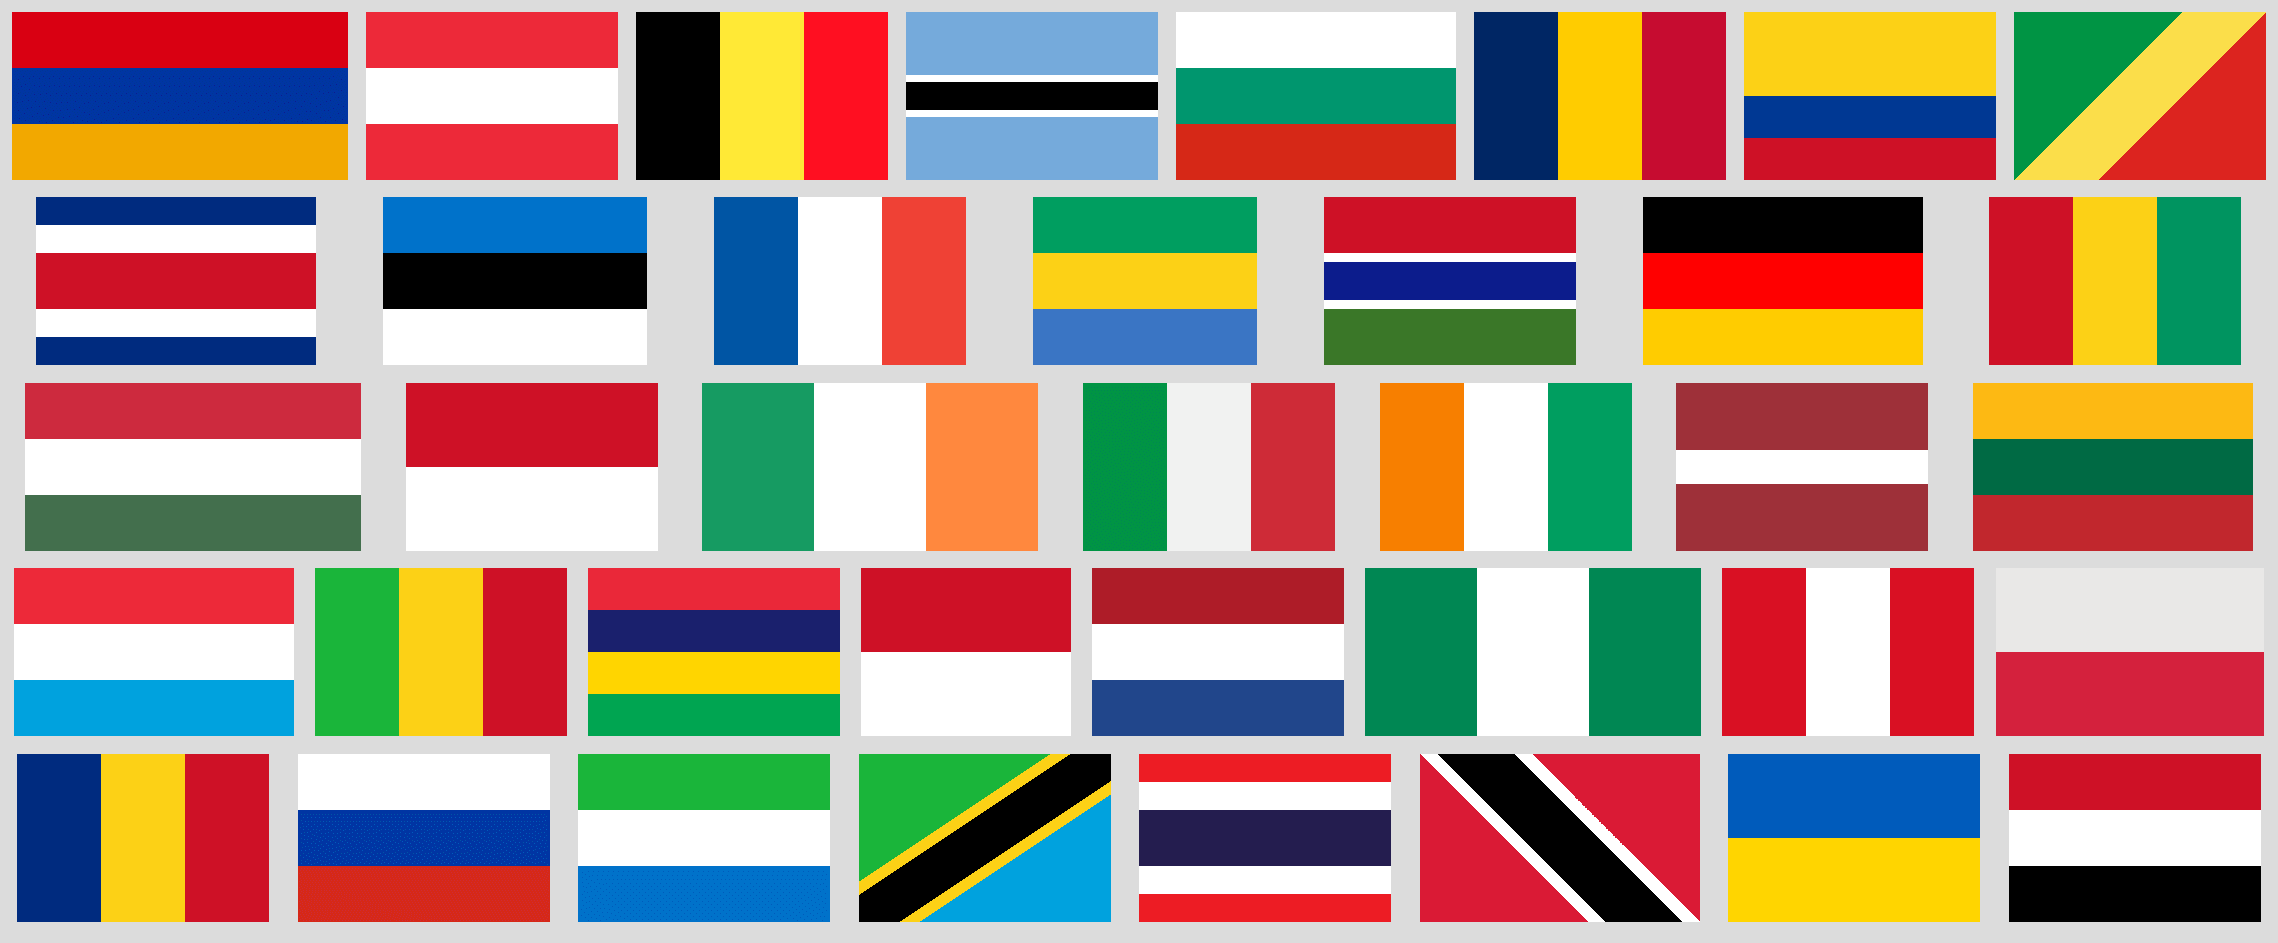 2 and 3 stripe flags